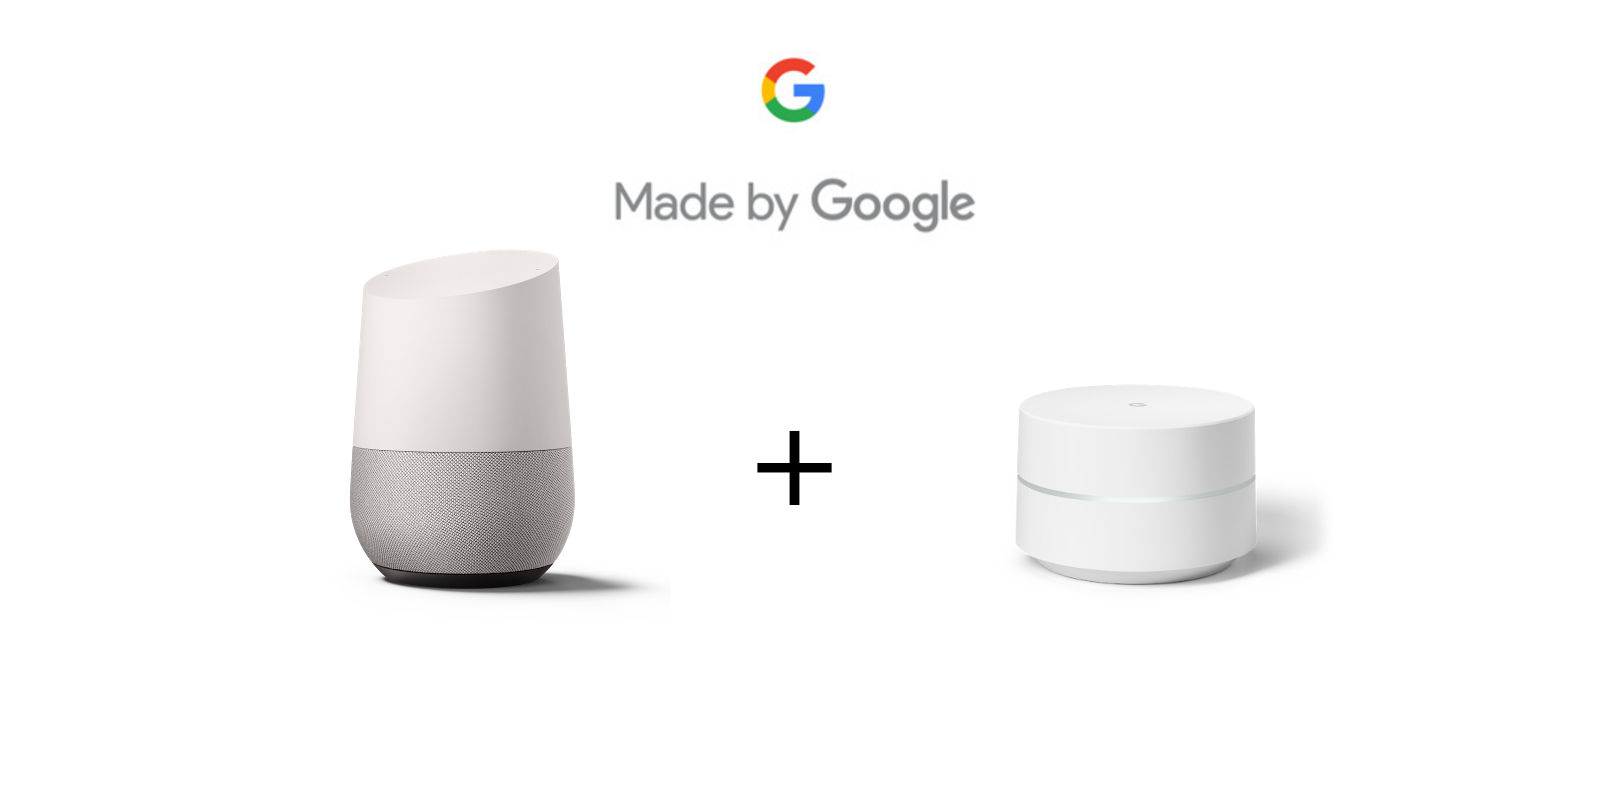 Google Home Aus Google To Announce Availability Of Home And Wifi Products